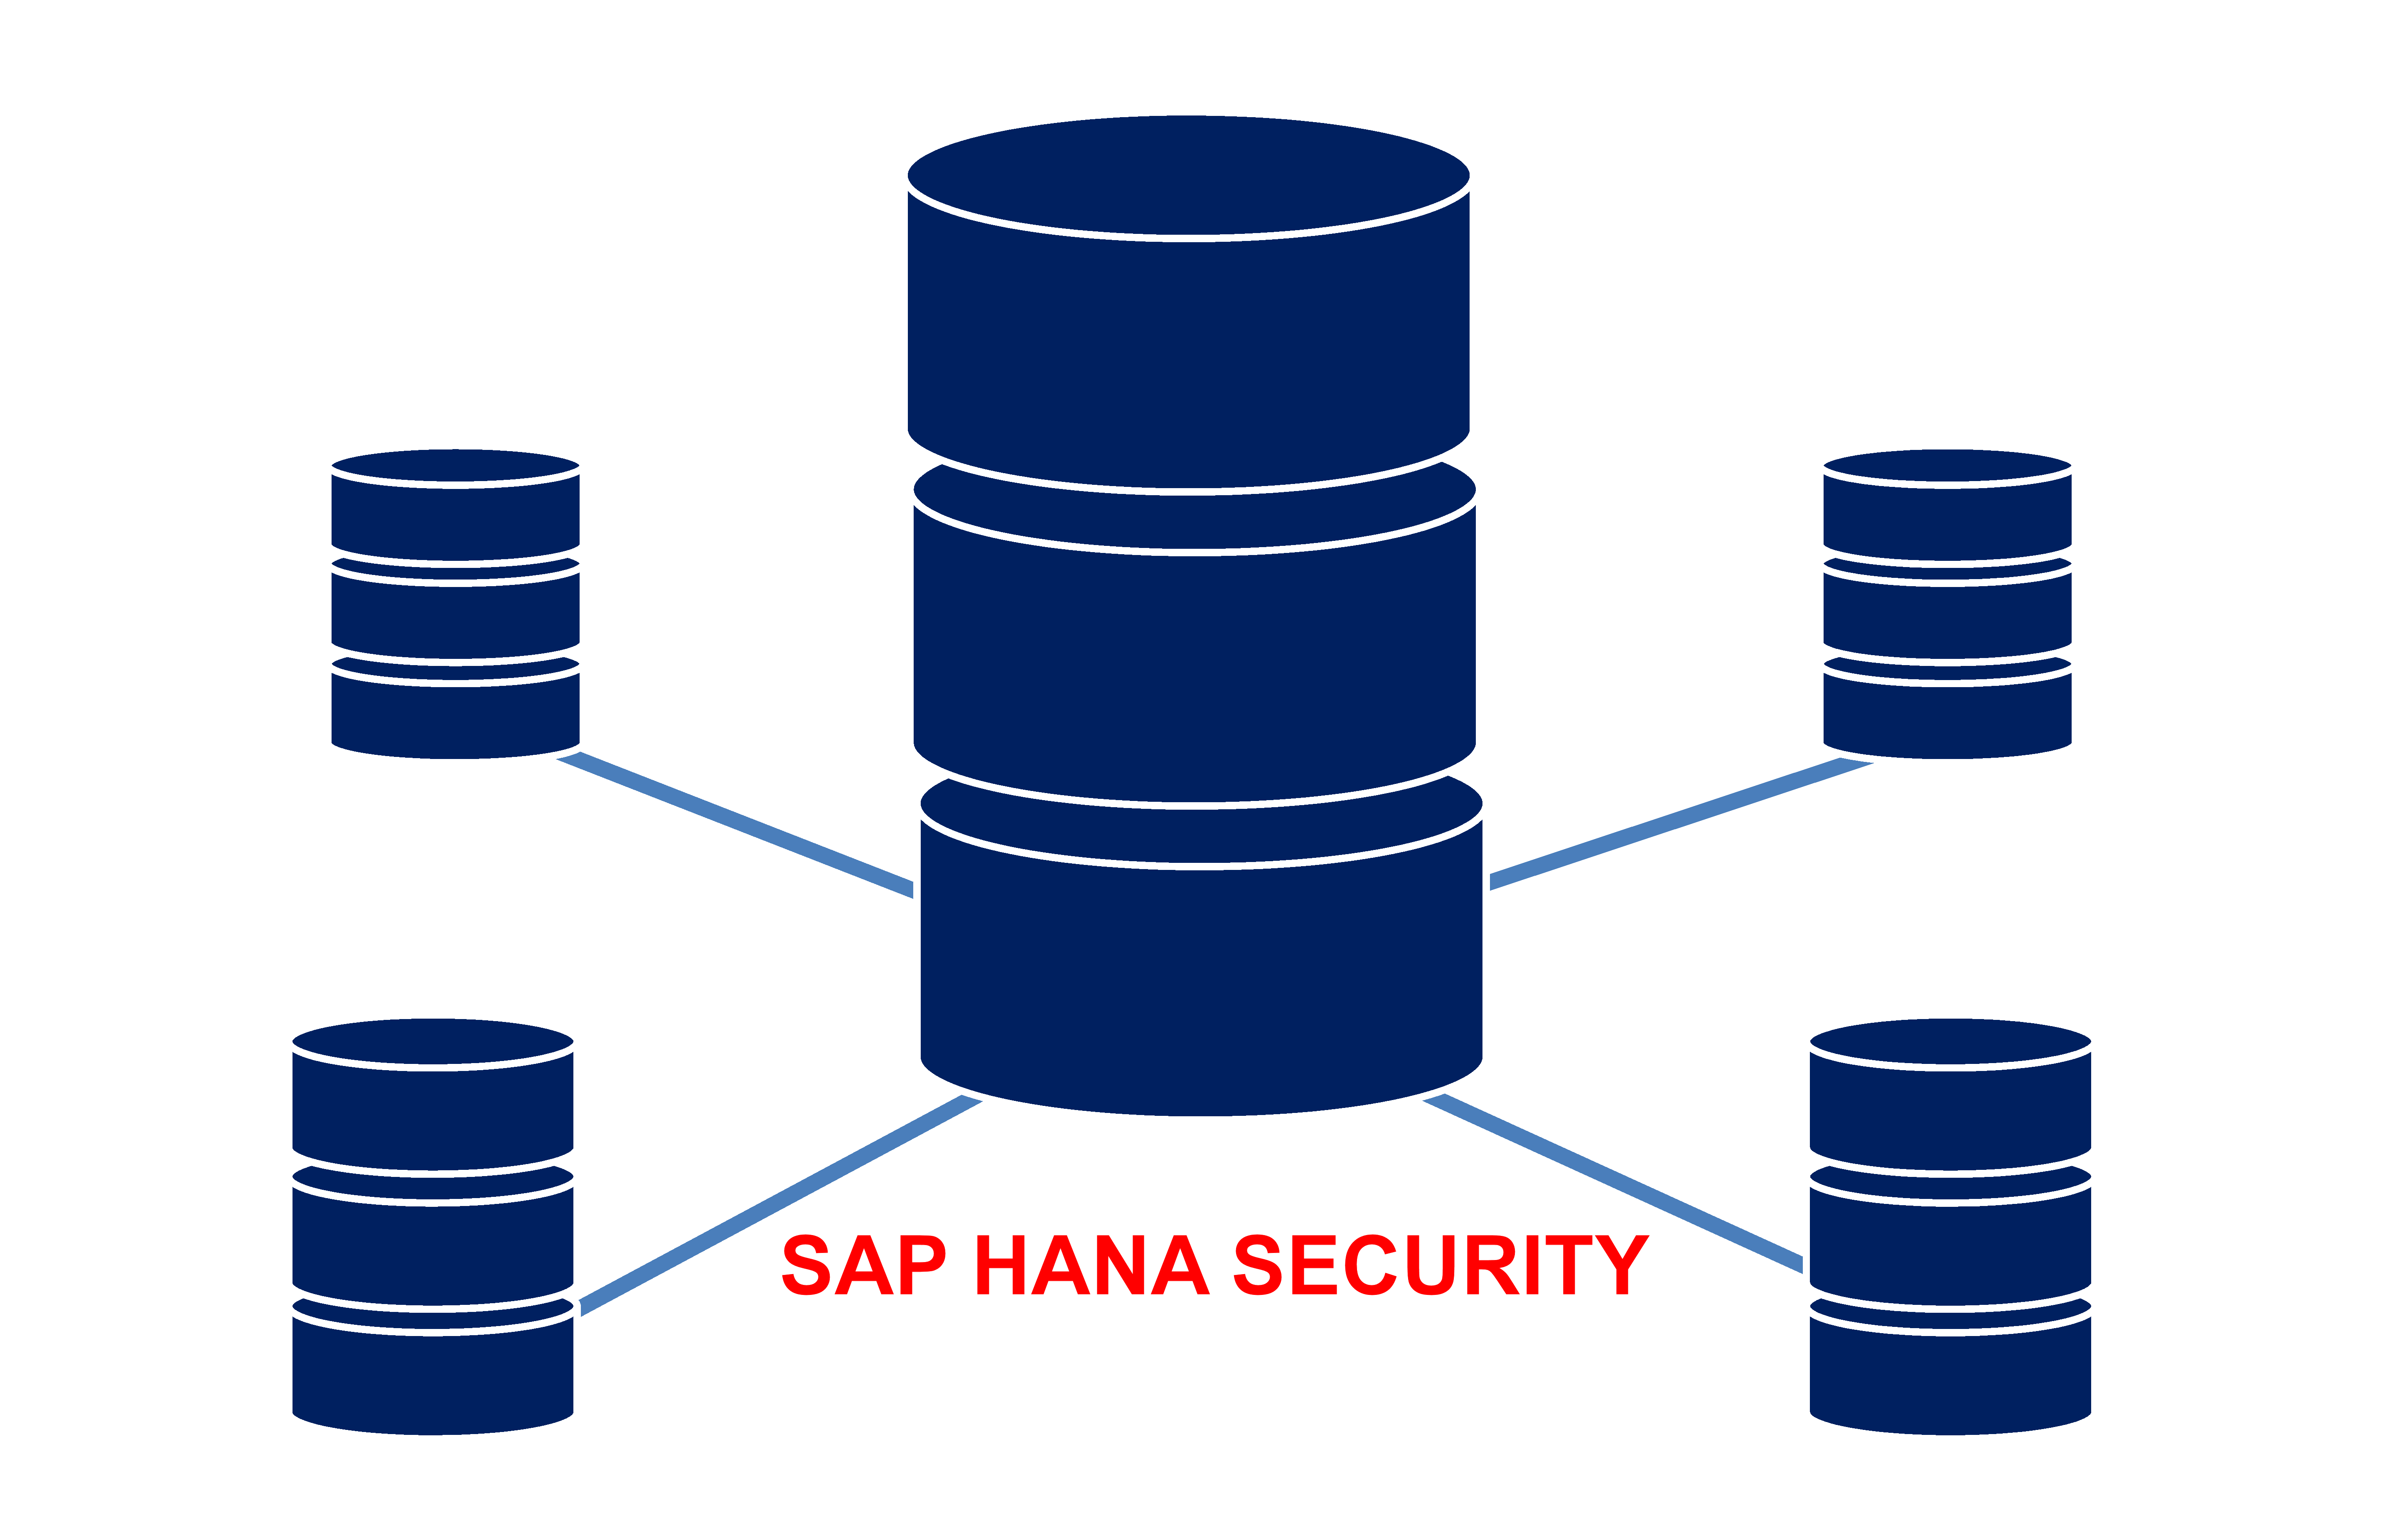 SAP HANA Security